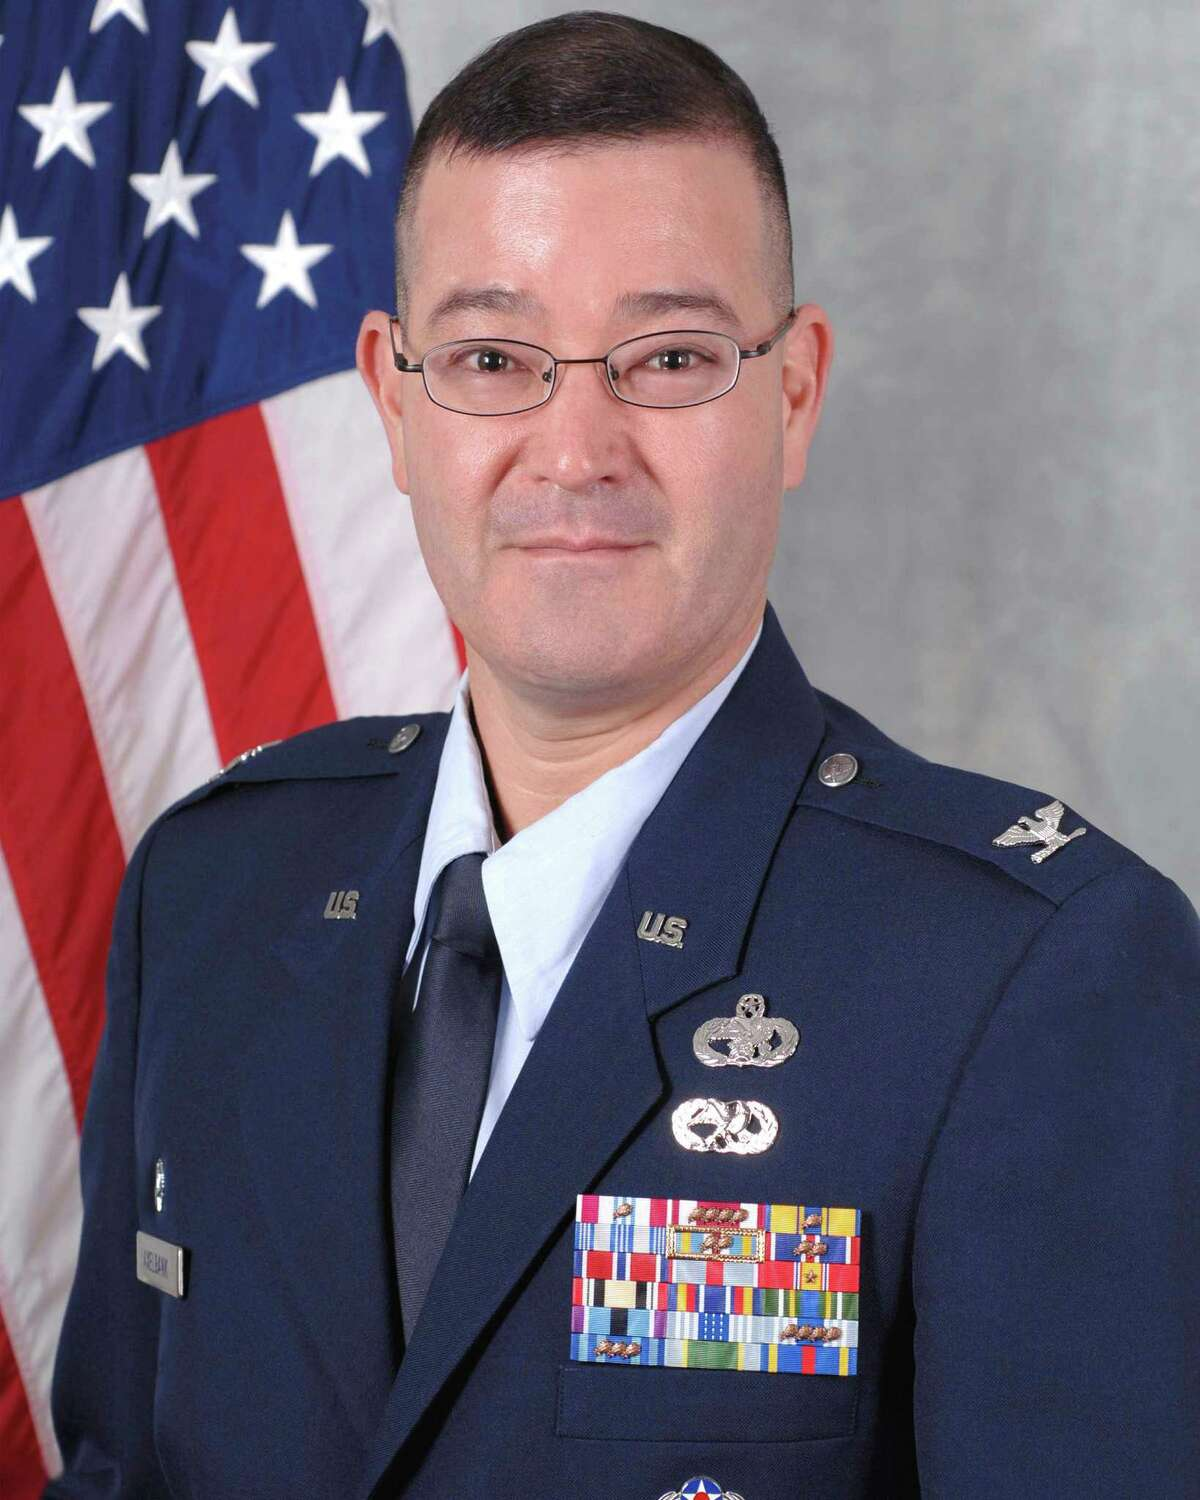 Col. Eric Axelbank, seen in an undated USAF courtesy photo accessed Tuesday Sept. 4, 2012, is a 1990 distinguished graduate of the Air Force ROTC program and a 2003 distinguished graduate of the Air Command and Staff College, according to his published bio. A career Logistics Readiness Officer, he has served in a broad range of logistics readiness, aircraft maintenance and personnel assignments at the joint, headquarters Air Force, center and wing levels. The 37th Training Wing is Colonel Axelbank's fourth command position, having commanded three times prior within the U.S. Air Forces in Europe and the Pacific Air Forces theaters. Before arriving at Lackland Air Force Base, Texas, Colonel Axelbank served as the Vice Commander, 65th Air Base Wing, Lajes Field, Azores, Portugal.